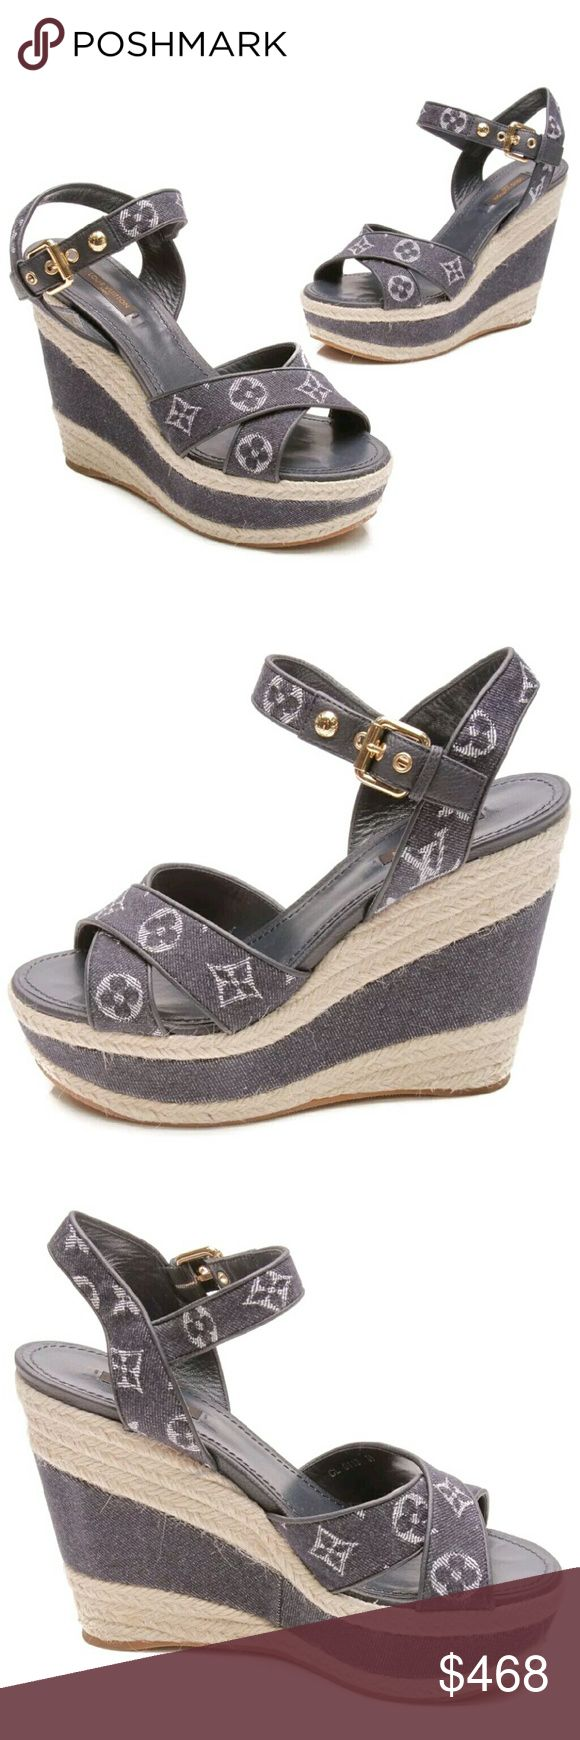 """Louis Vuitton Formentera Denim Monogram Wedge 39 Authentic Louis Vuitton Blue Denim Monogram Formentera Wedge Espadrille Sandals. Blue leather and goldtone adjustable buckle with monogram denim straps around/behind ankle and crossing over toes. Woven natural rope and blue denim cover the 5"""" wedge. Blue leather footbed with rubber sole carved with LV within.  Made in Italy.  NOTE: This shoe runs small. Best fits a US 8 - 8 1/2.  I wear a US 9 and they are tight. New without tags or box. Never…"""